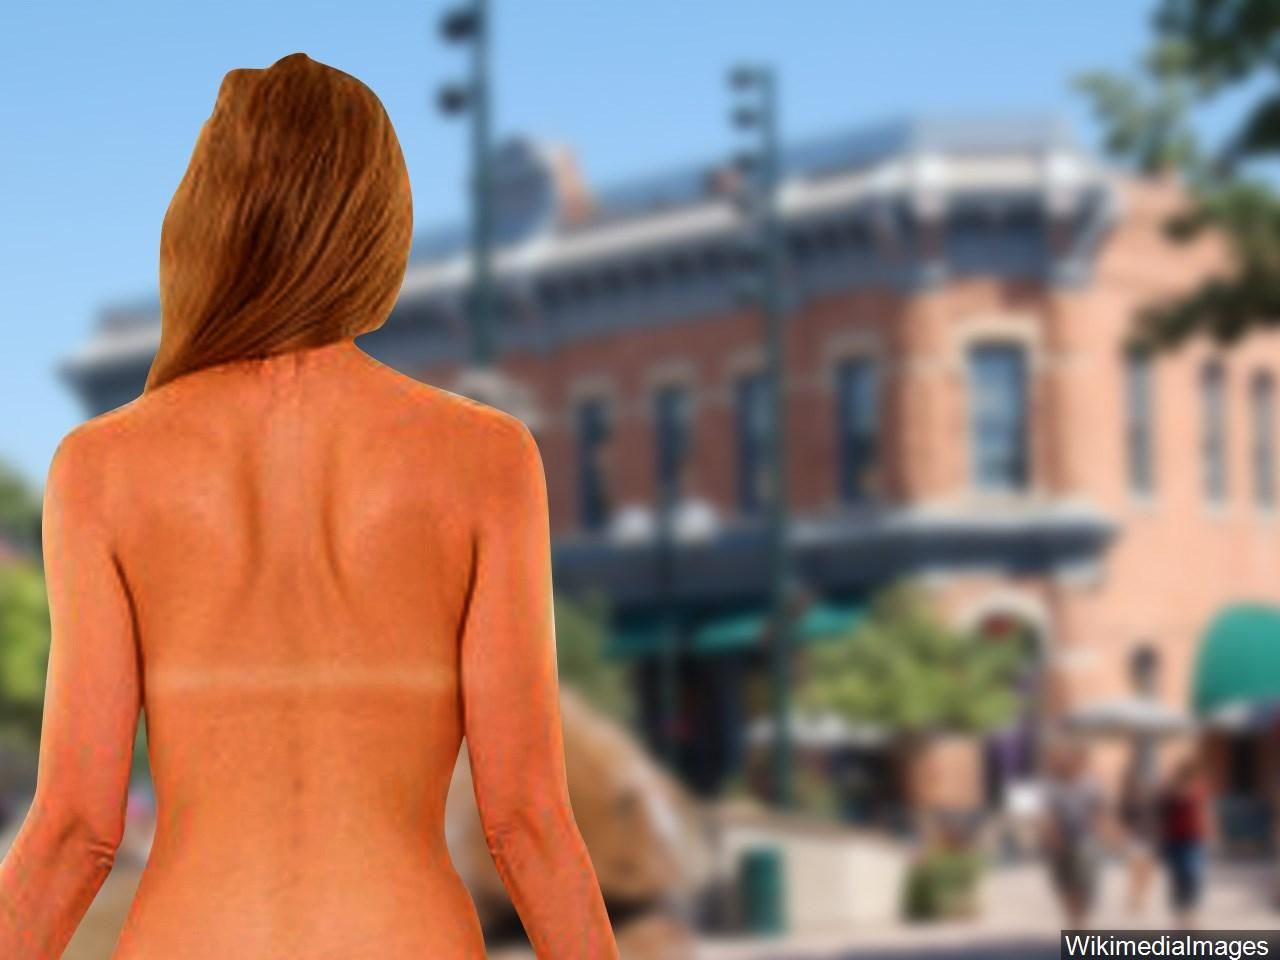 Women can now legally go topless in Utah, 5 other states, after federal ruling. (Photo Wikimedia via MGN)